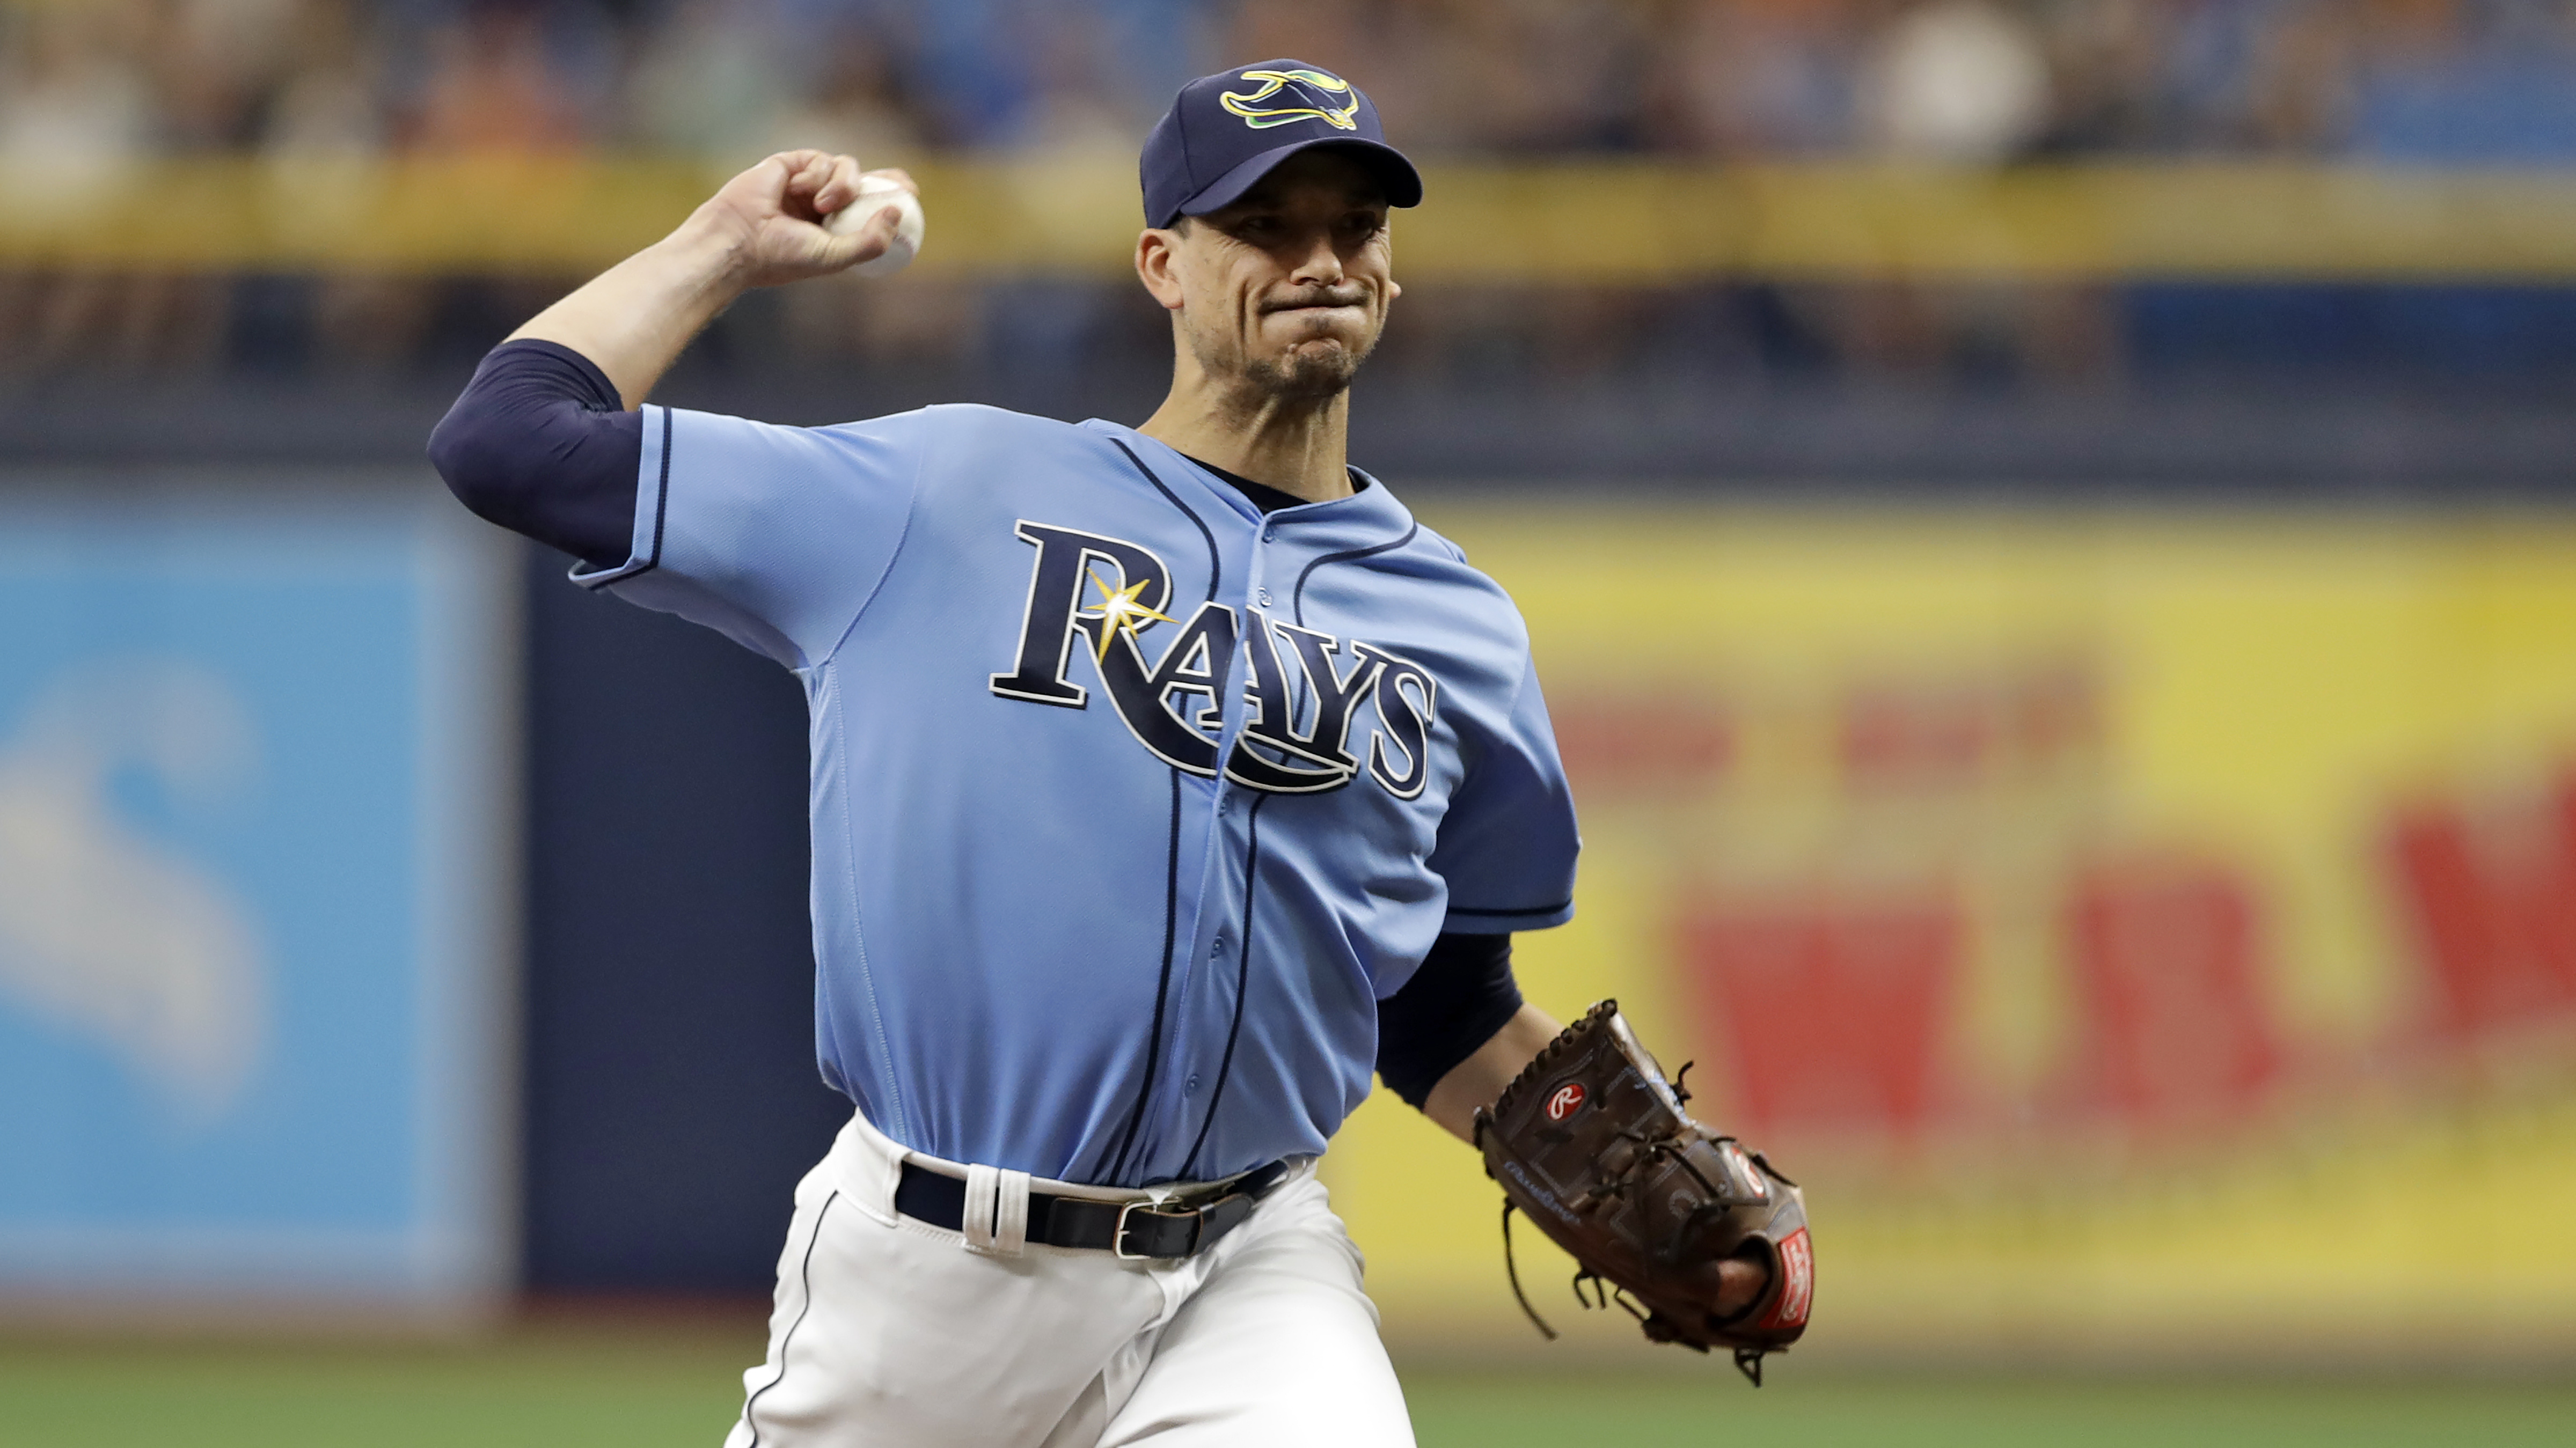 Rays 2017: Innovations that have put Tampa Bay on the